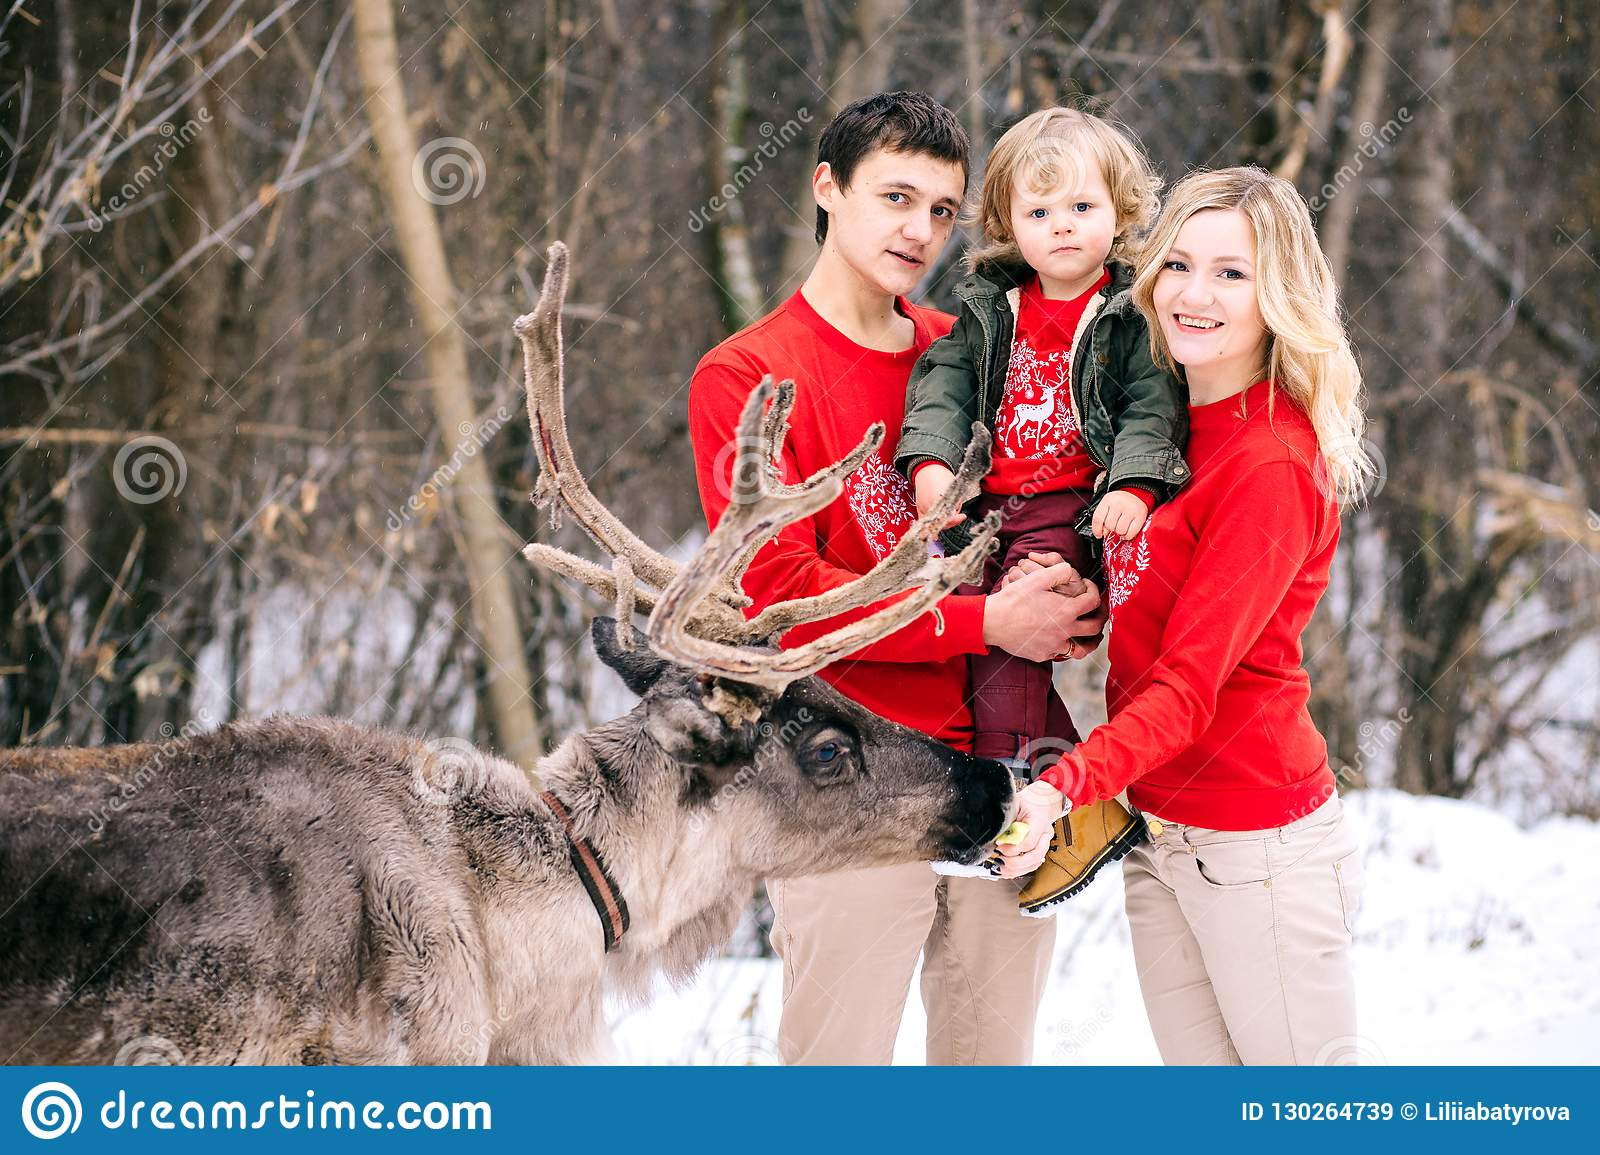 Parenthood Fashion Season And People Concept Happy Family With Child In Winter Clothes Outdoors Stock Image Image Of Face Embracing 130264739